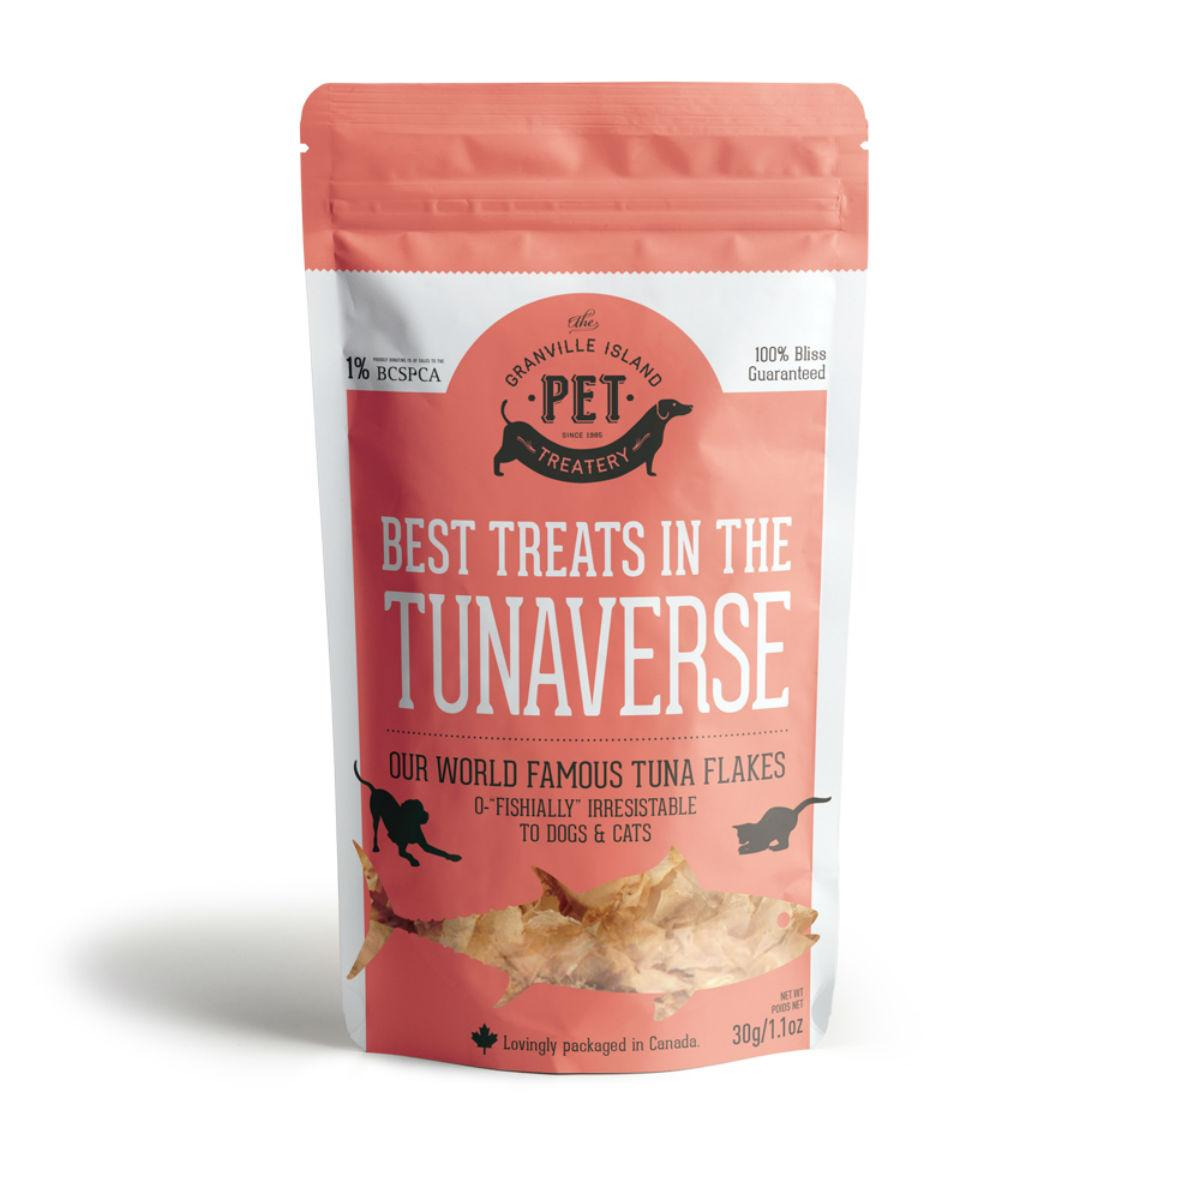 Granville Pure Protein Pet Treat - Best Treats in the Tunaverse